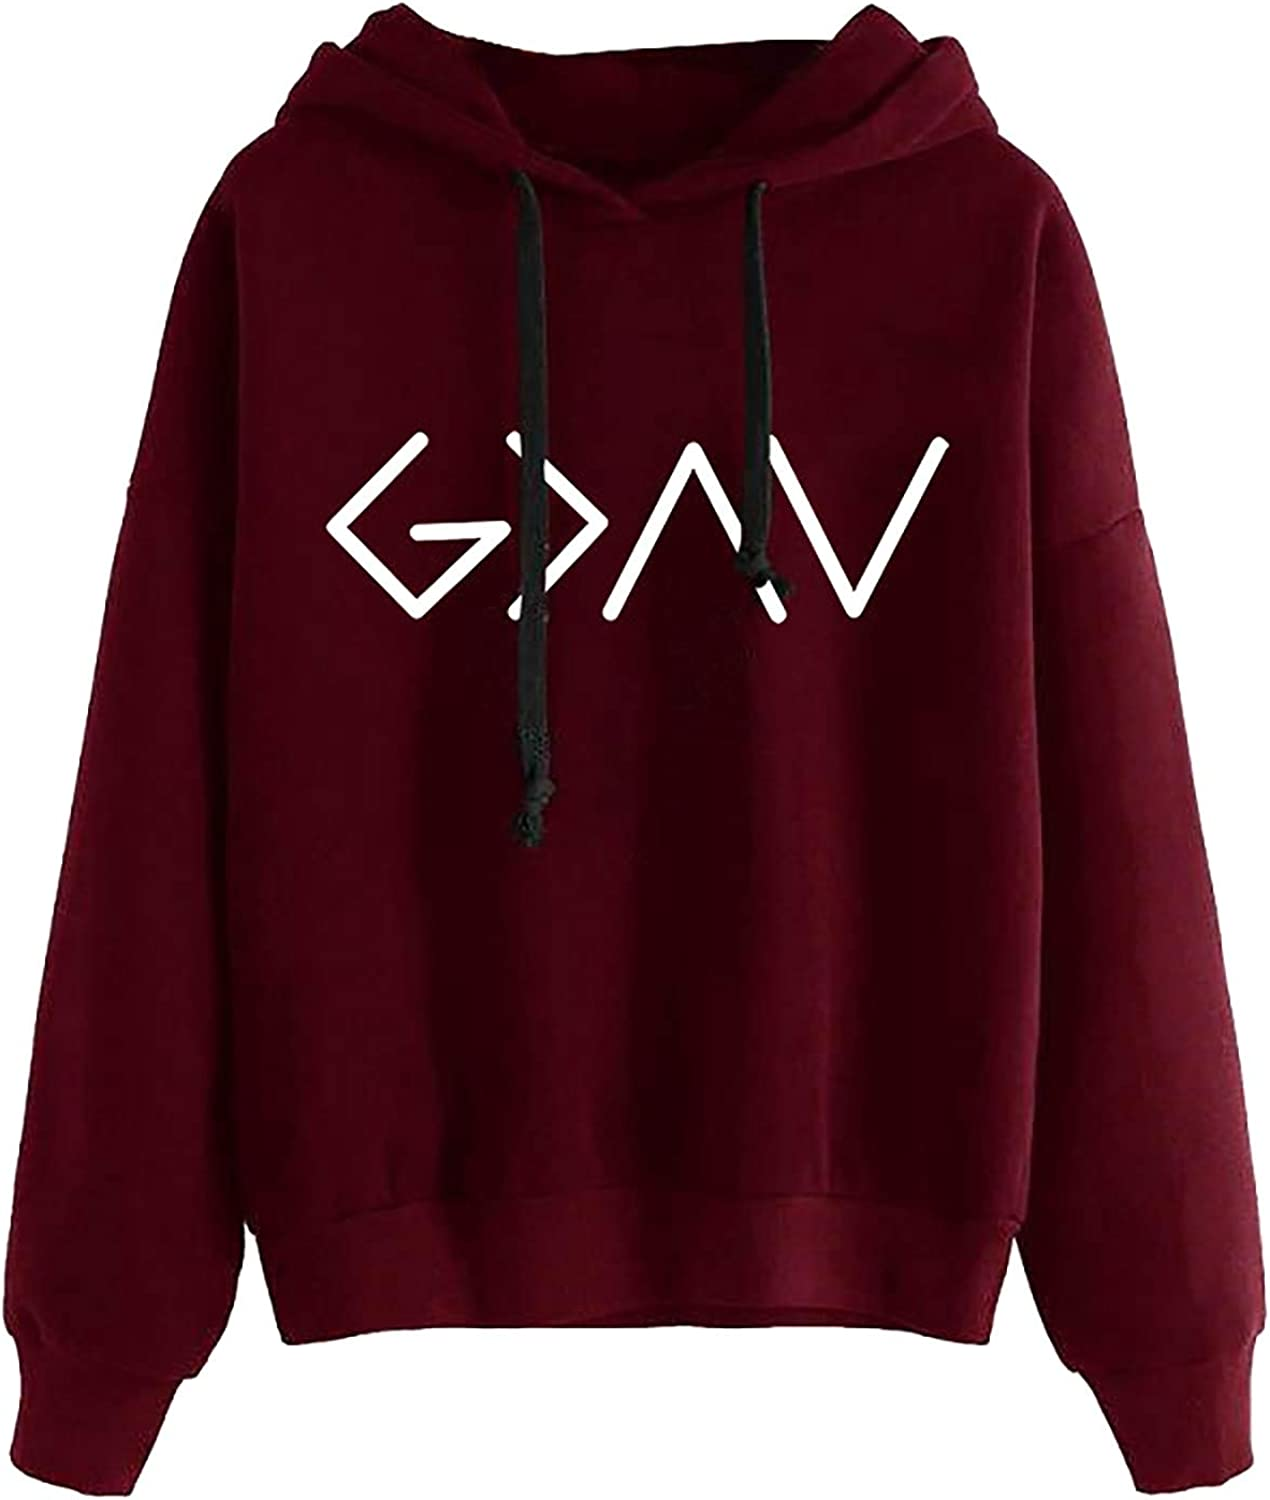 Sweatshirts for Women, Womens Long Sleeve Cute Graphic Hoodie and Sweatshirt Casual Loose Pullover Tops Sweaters